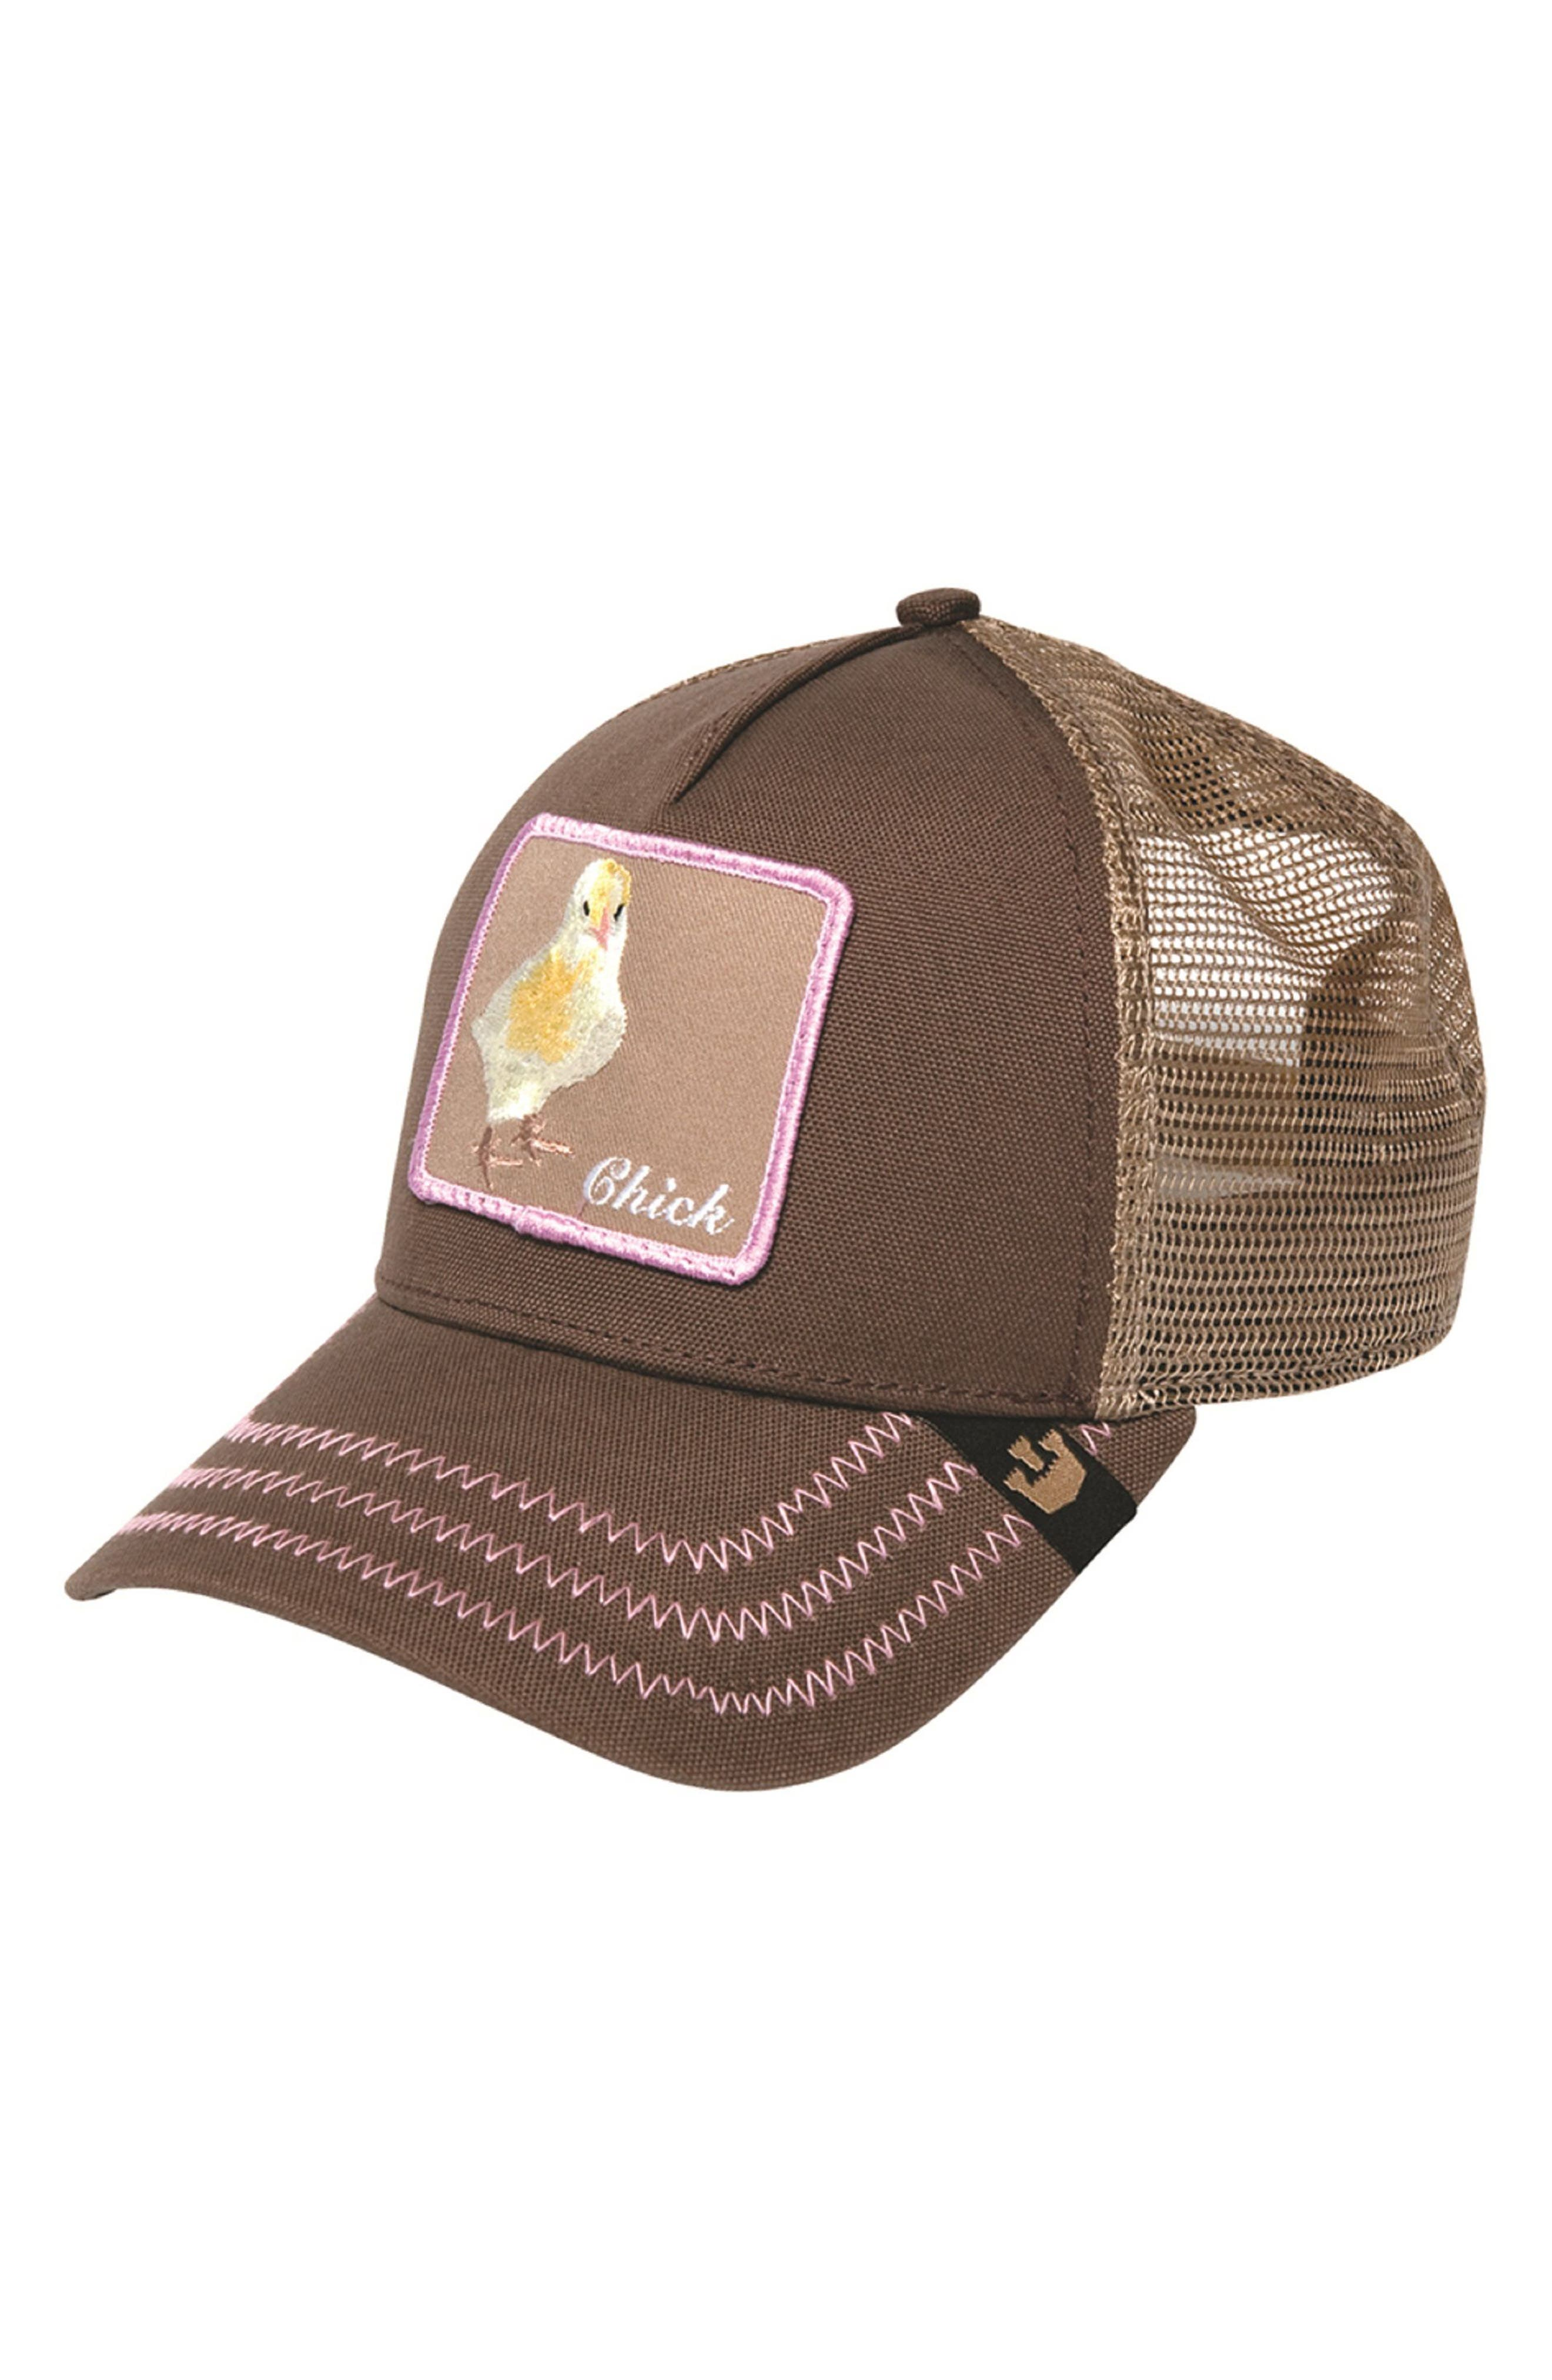 Chicky Boom Trucker Hat,                         Main,                         color, Brown